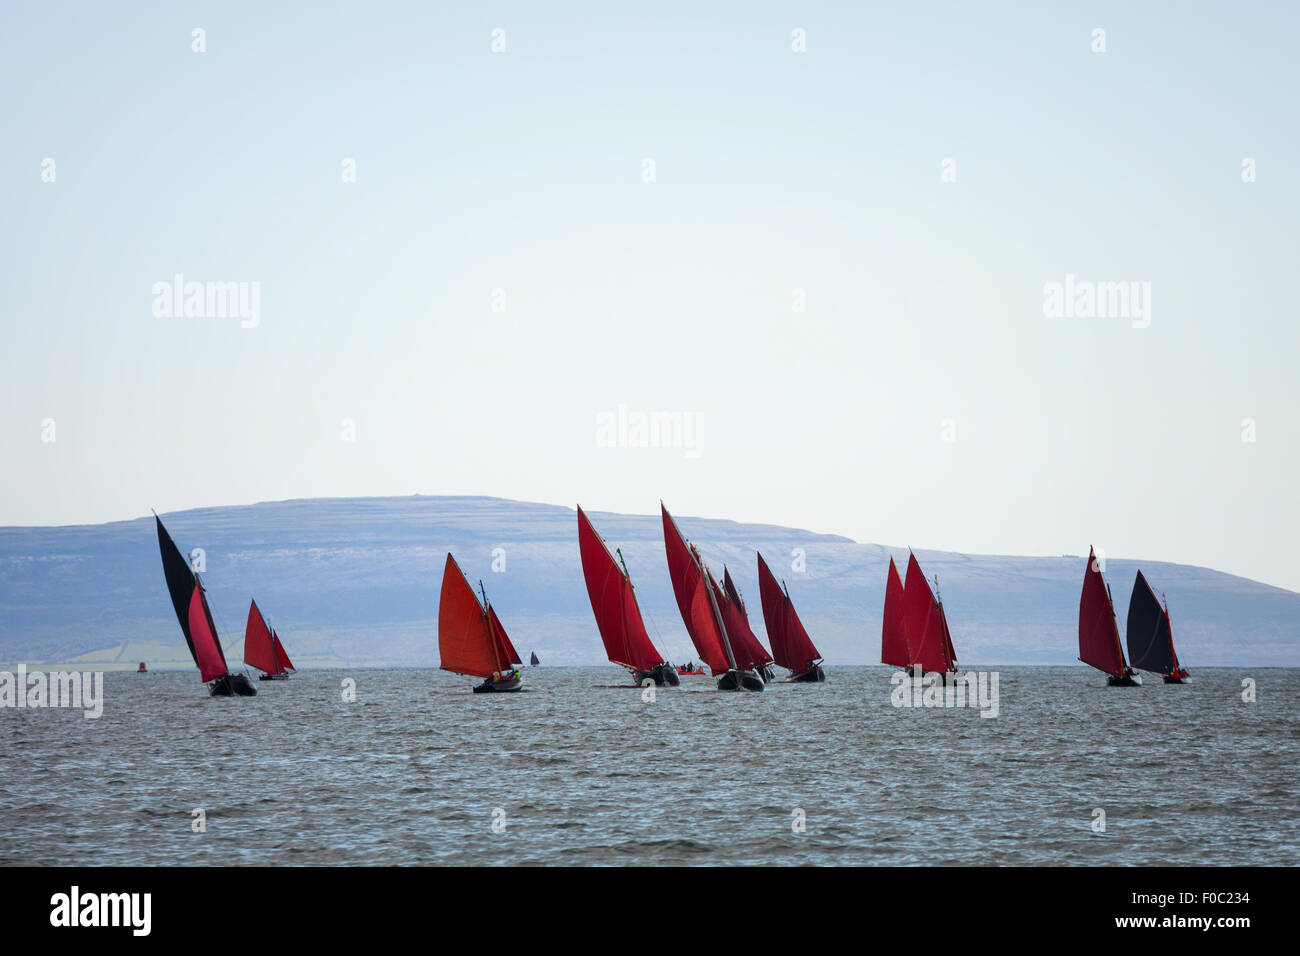 Traditional wooden boats Galway Hooker, with red sail, compete in regatta. Ireland. - Stock Image